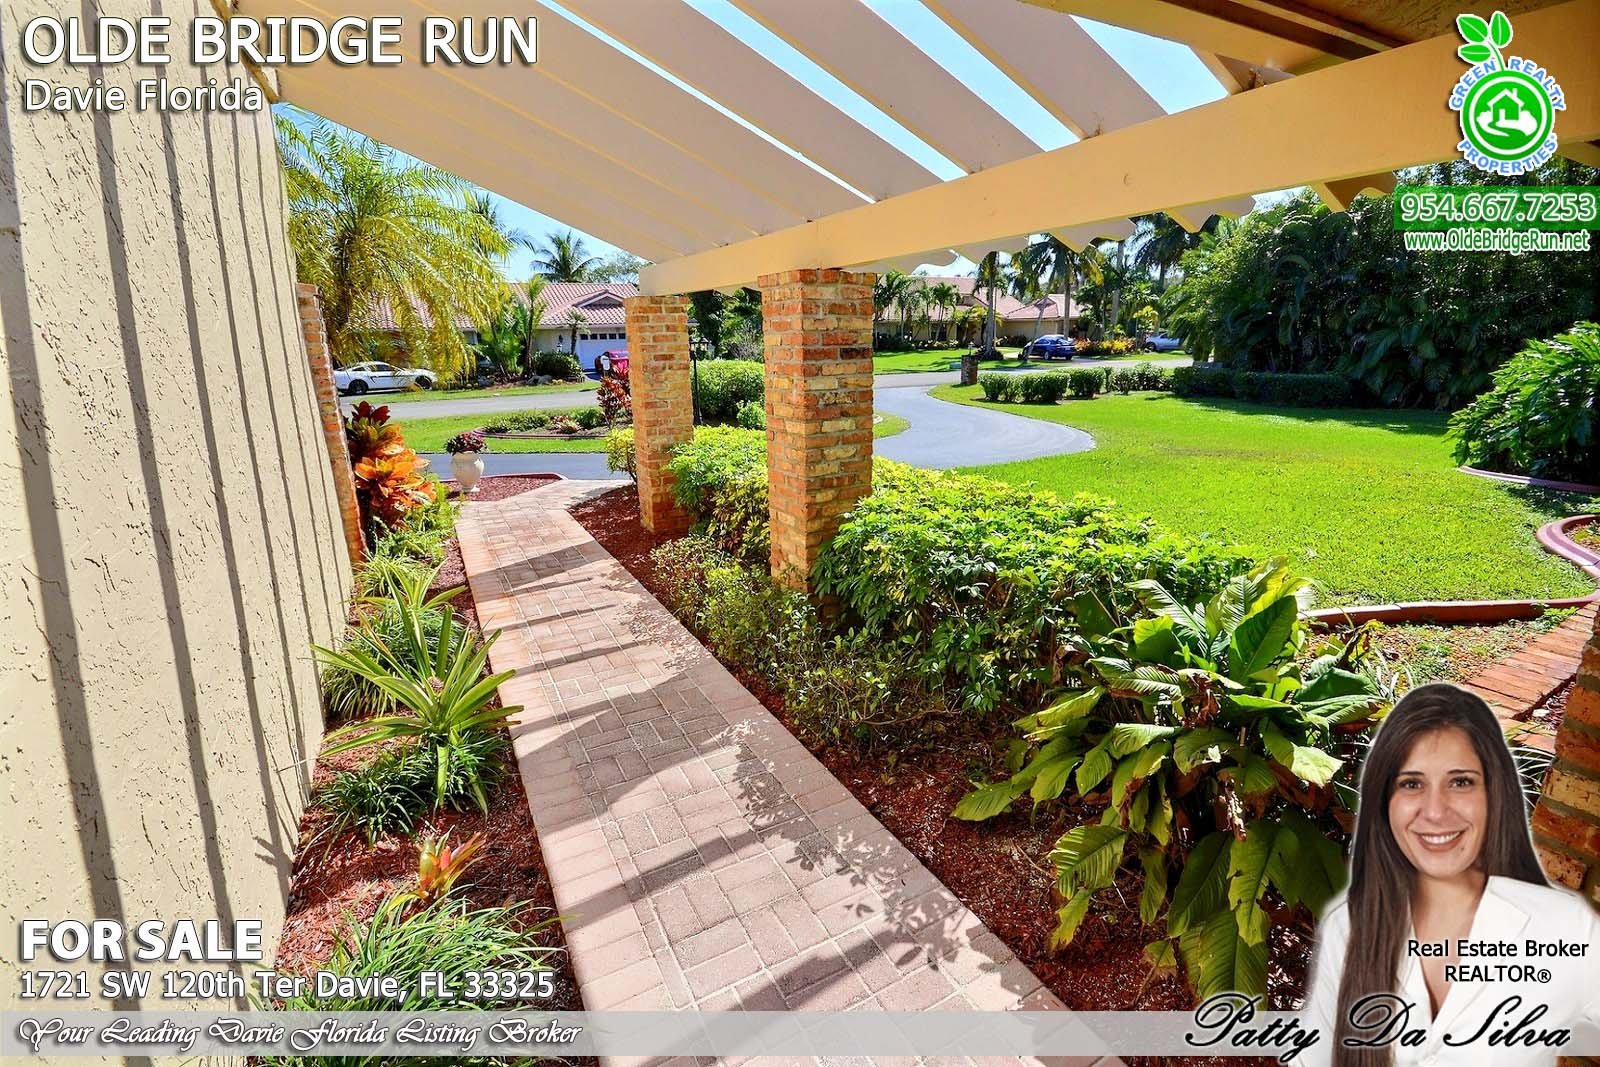 olde bridge run davie south florida